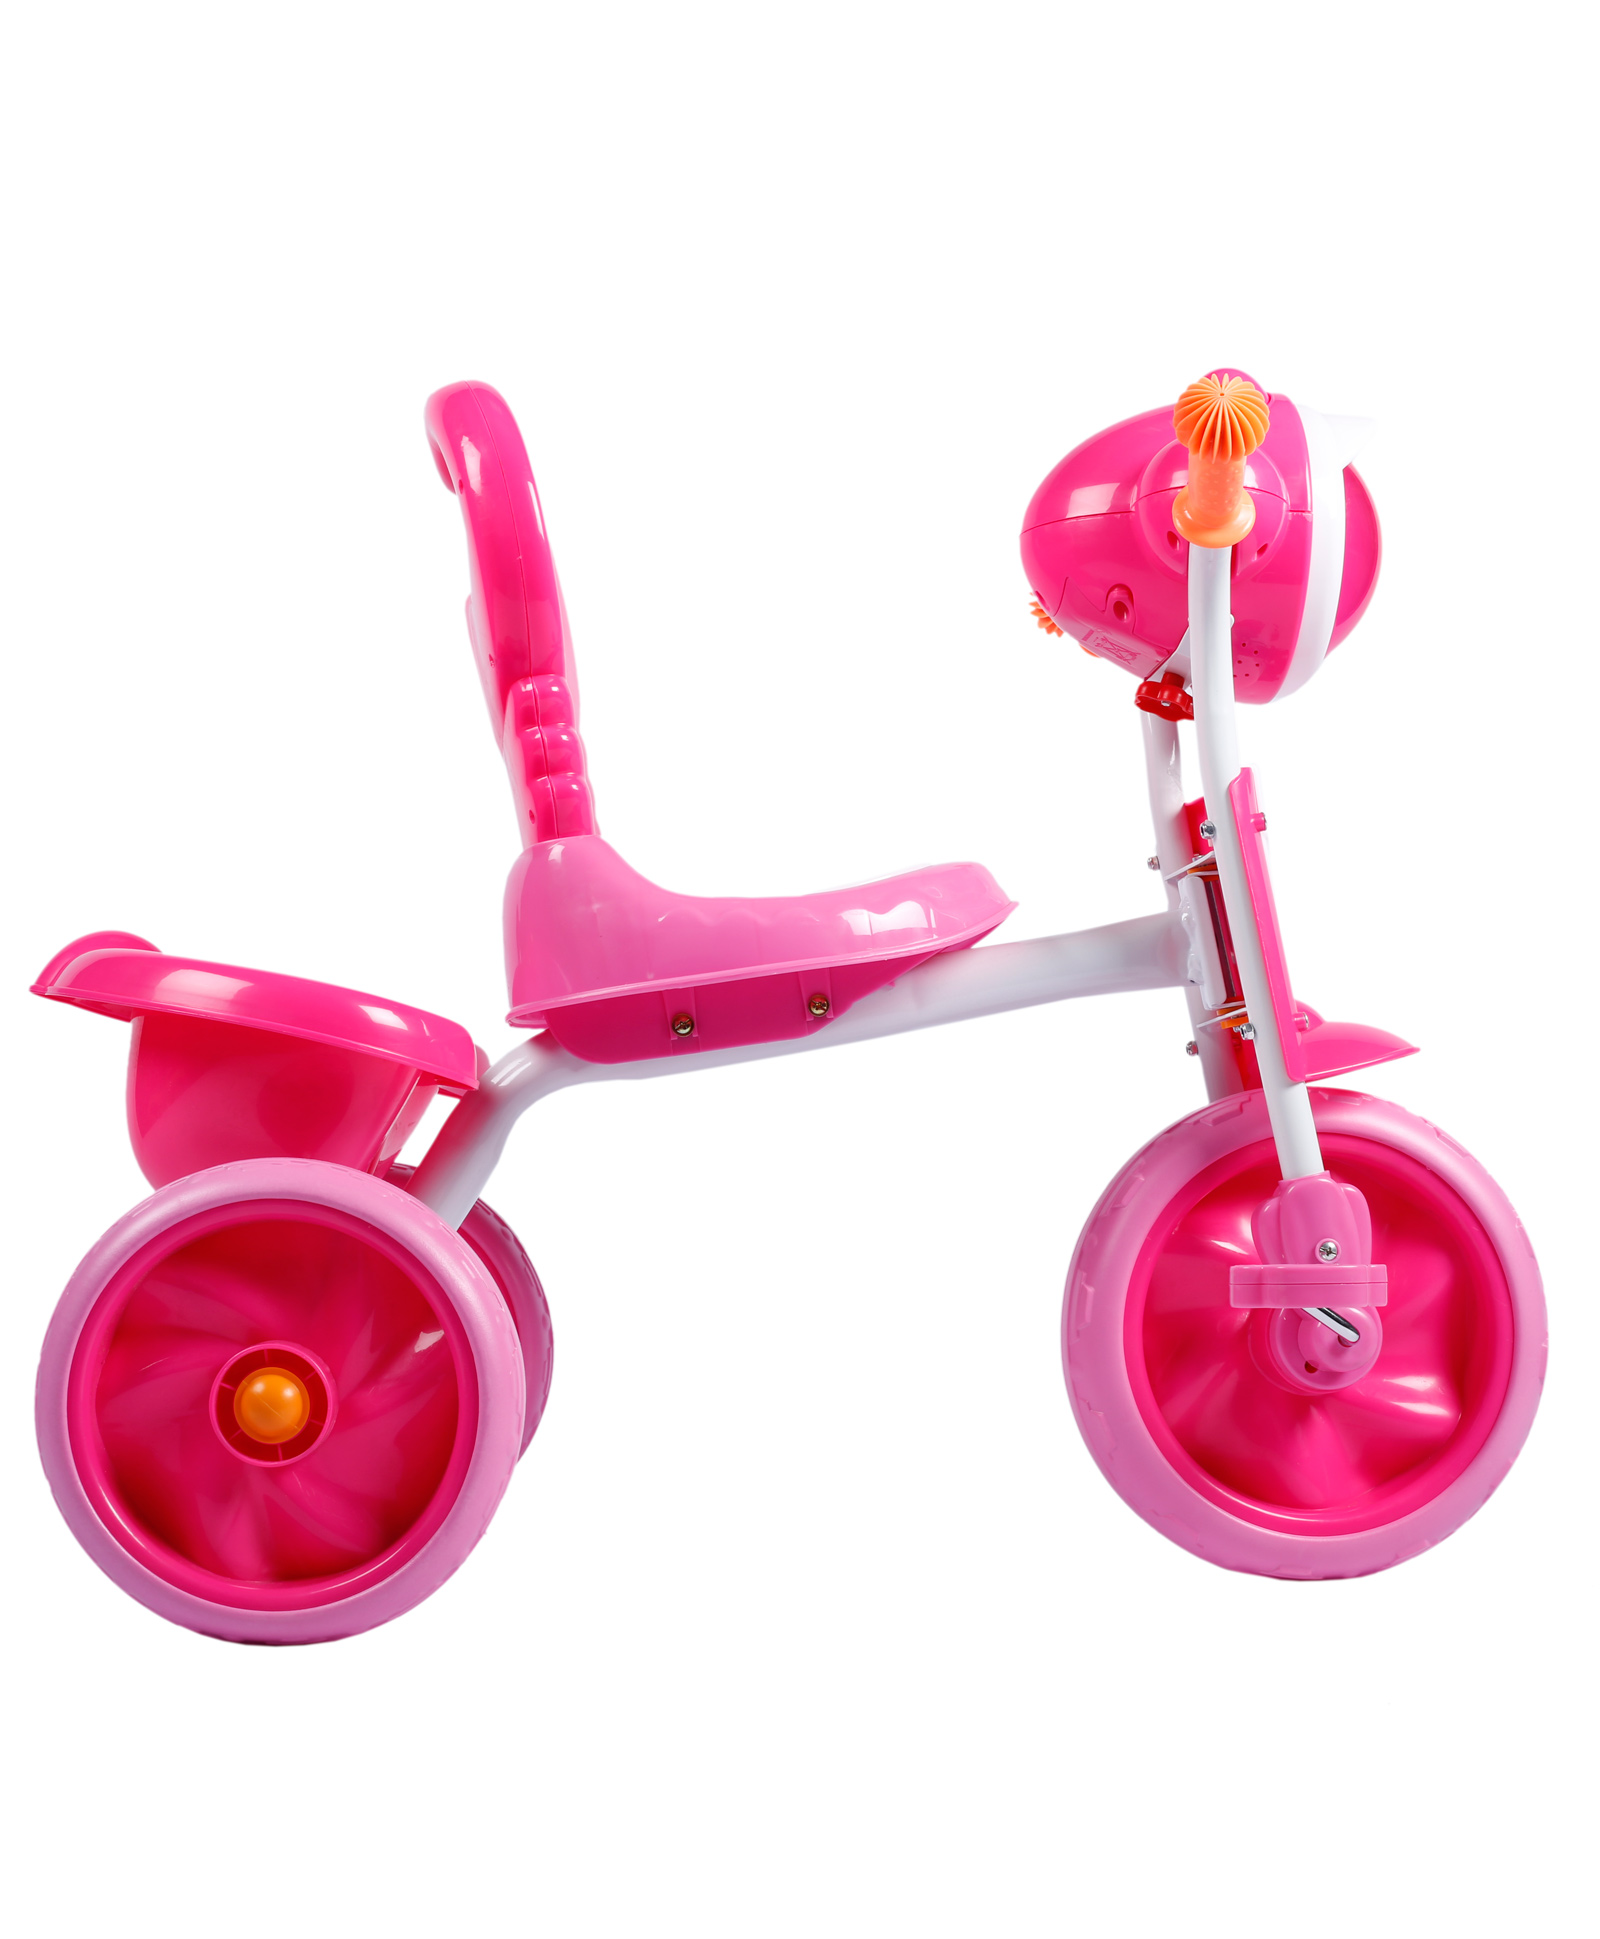 Toy House Scooty Tri Cycle- Pink Colour